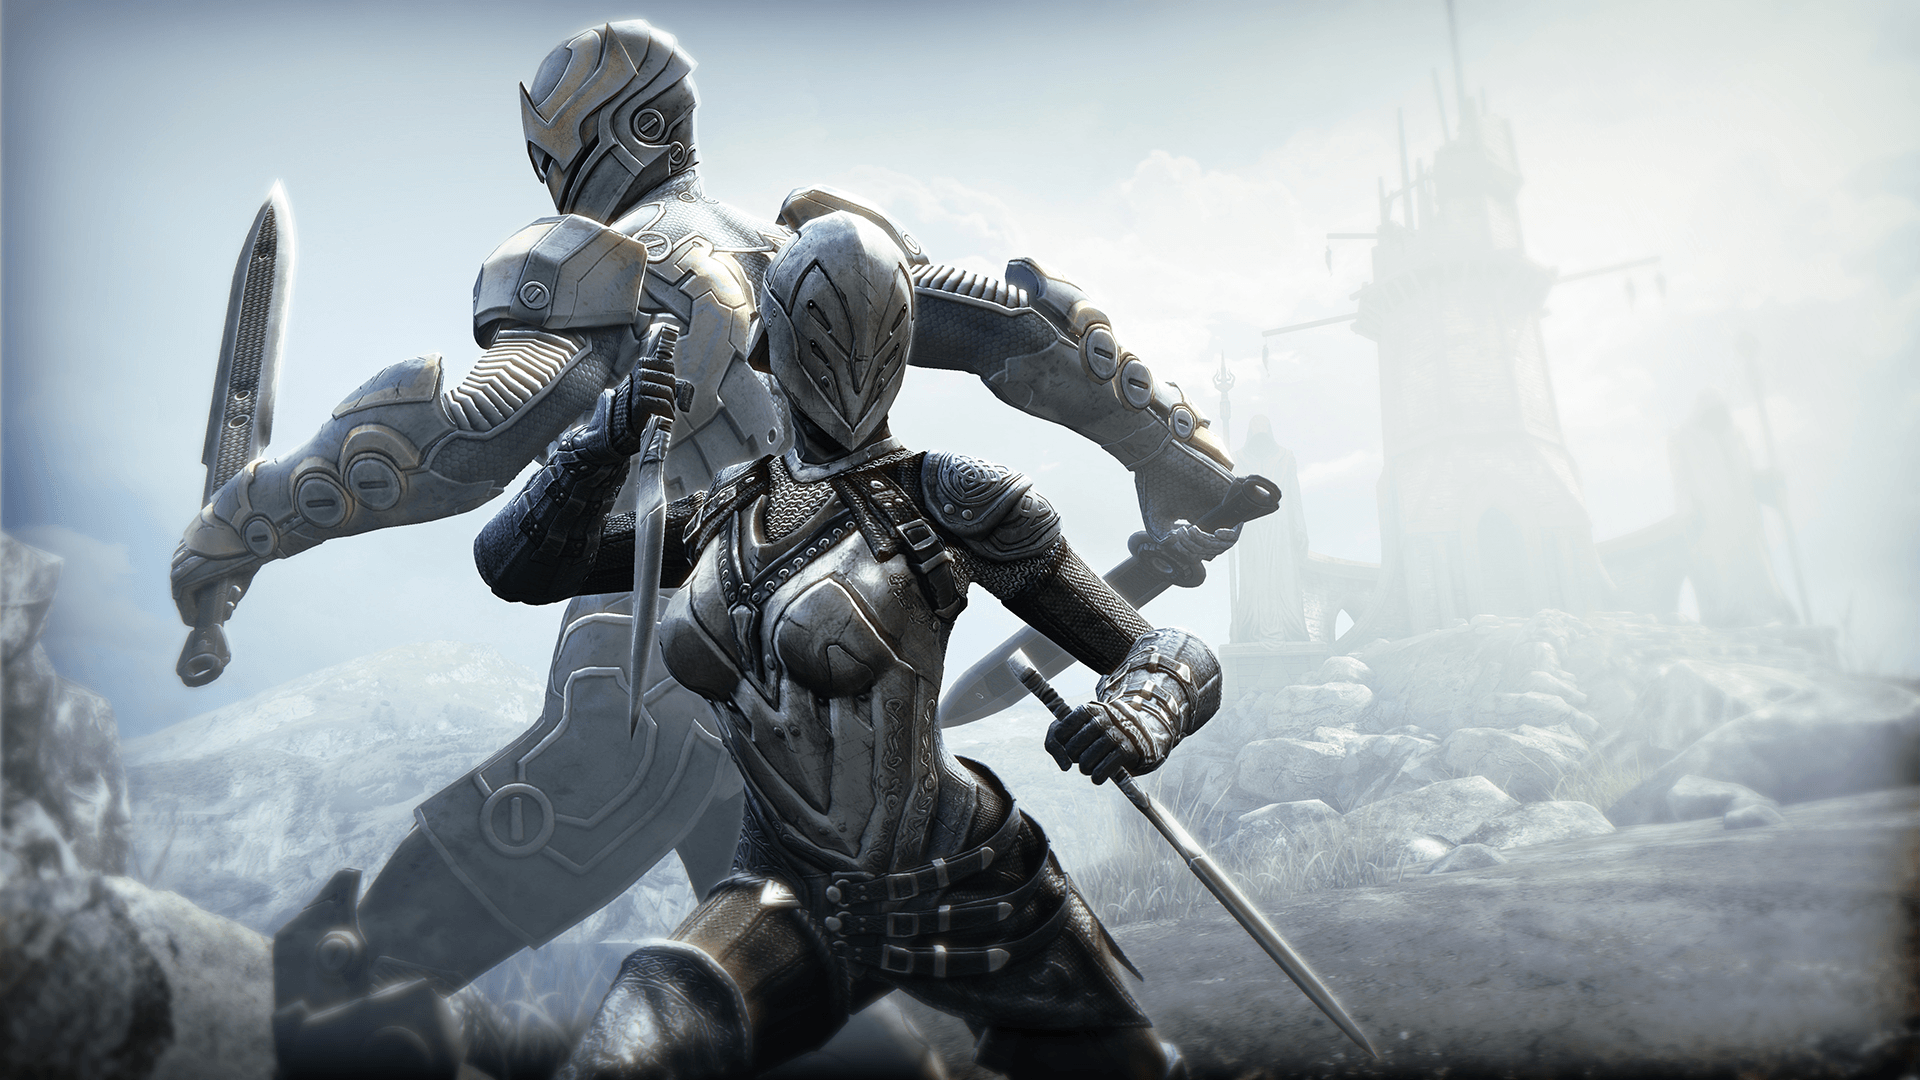 Desktop - Infinity Blade I II III Wallpapers for your Mac, PC .